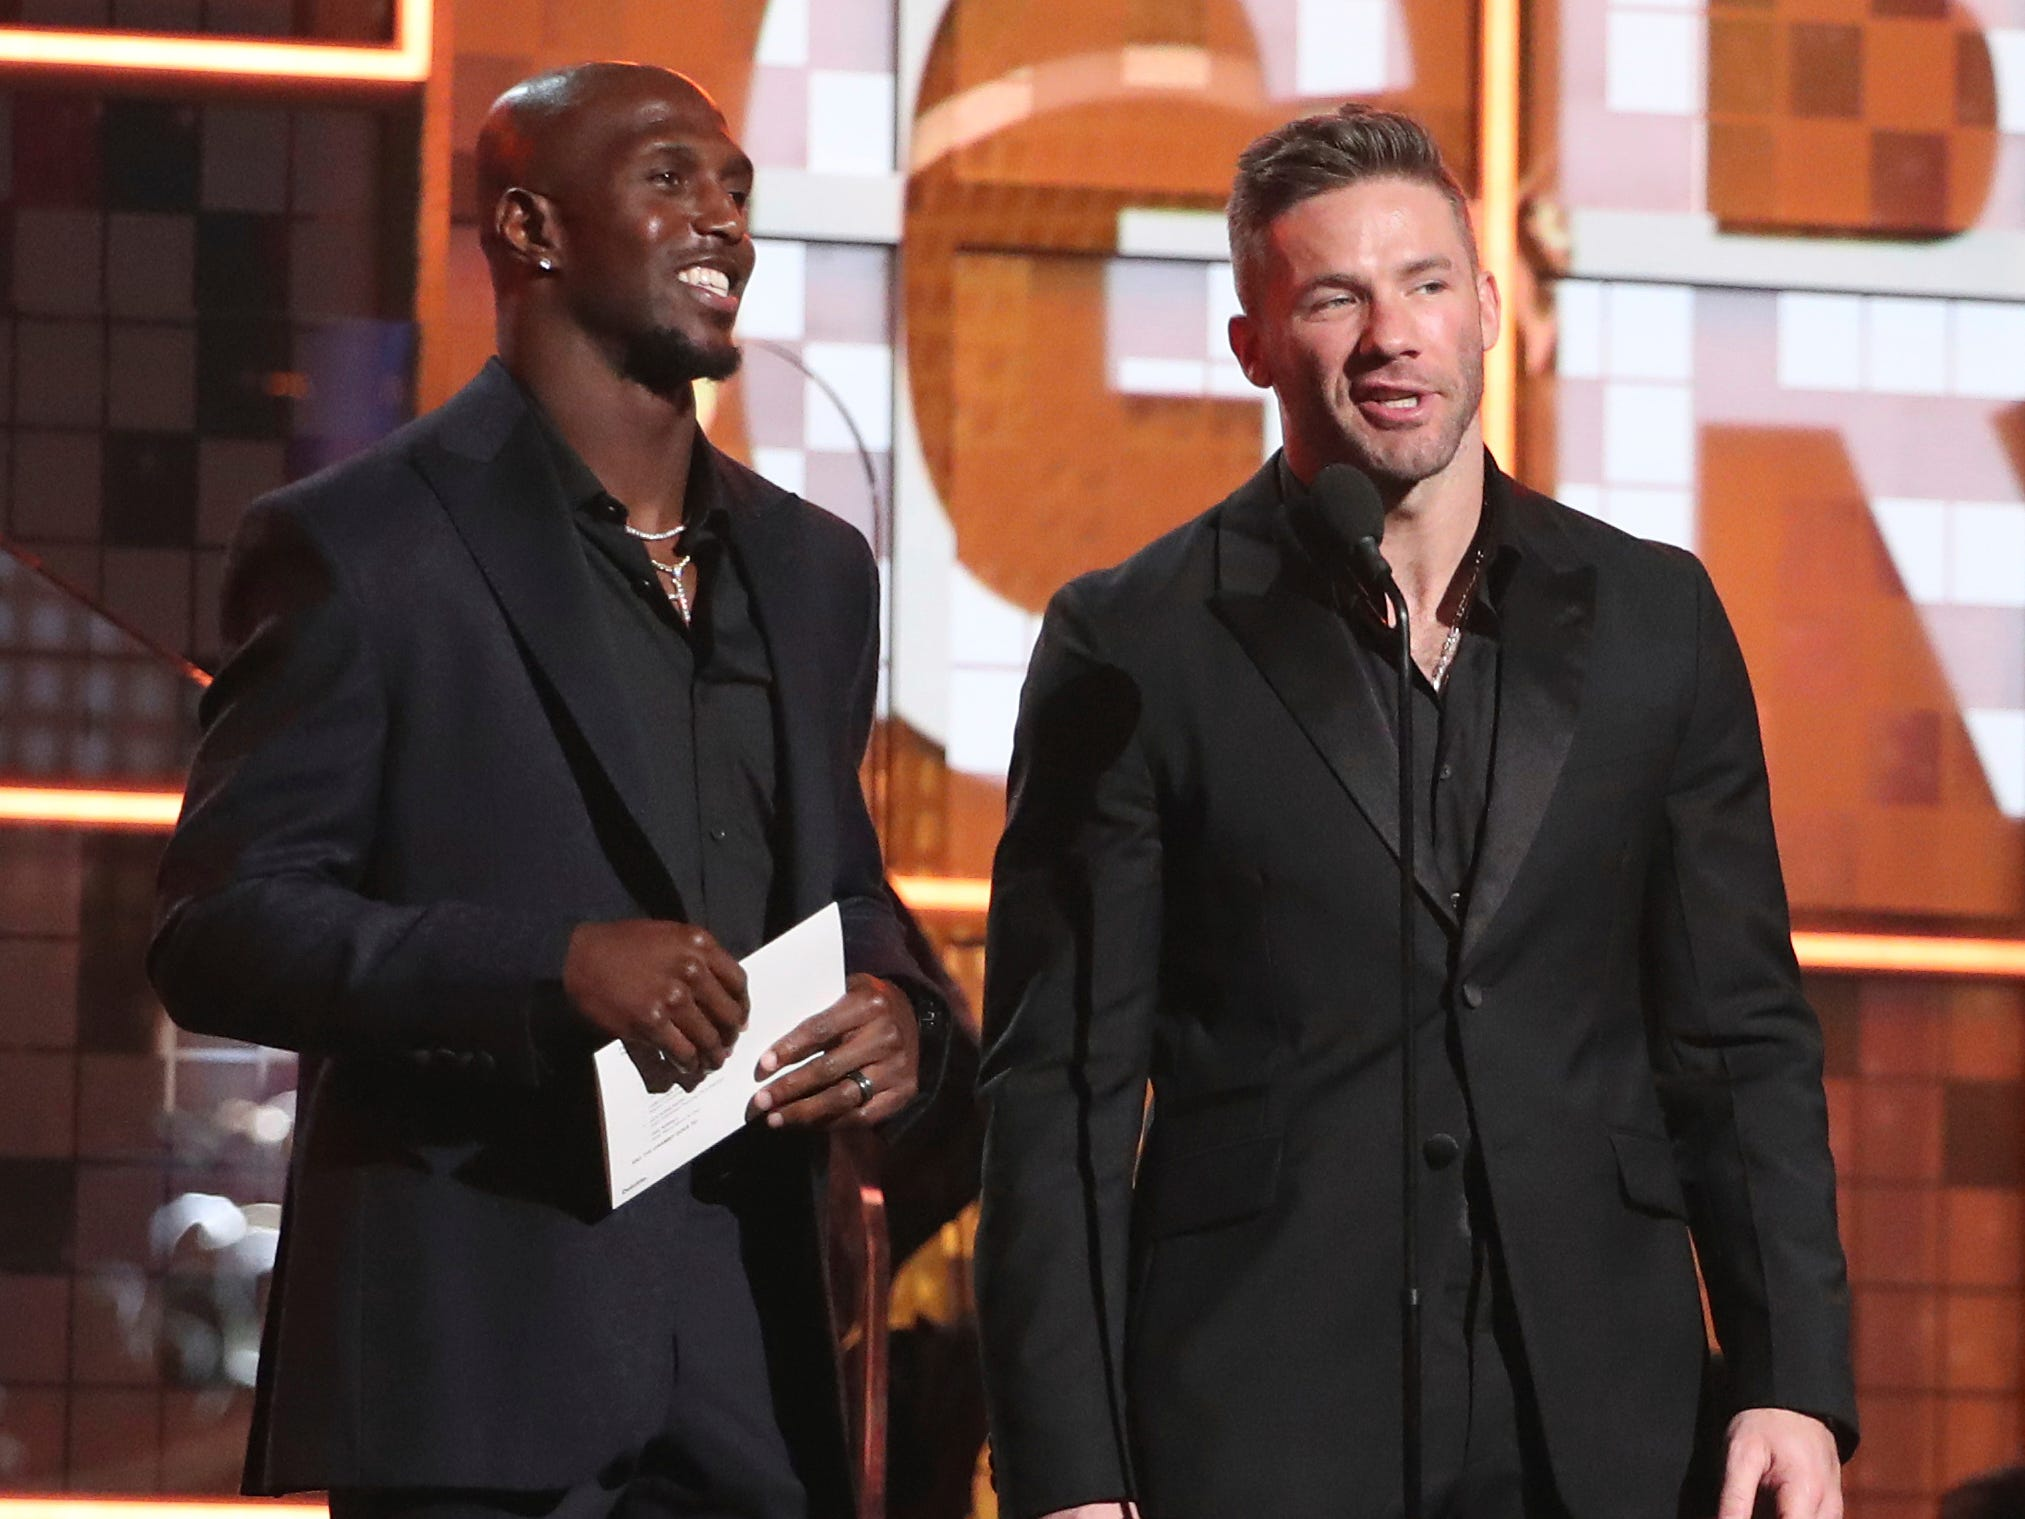 Devin McCourty, left, and Julian Edelman present the award for best pop duo or group performance at the 61st annual Grammy Awards on Sunday, Feb. 10, 2019, in Los Angeles.